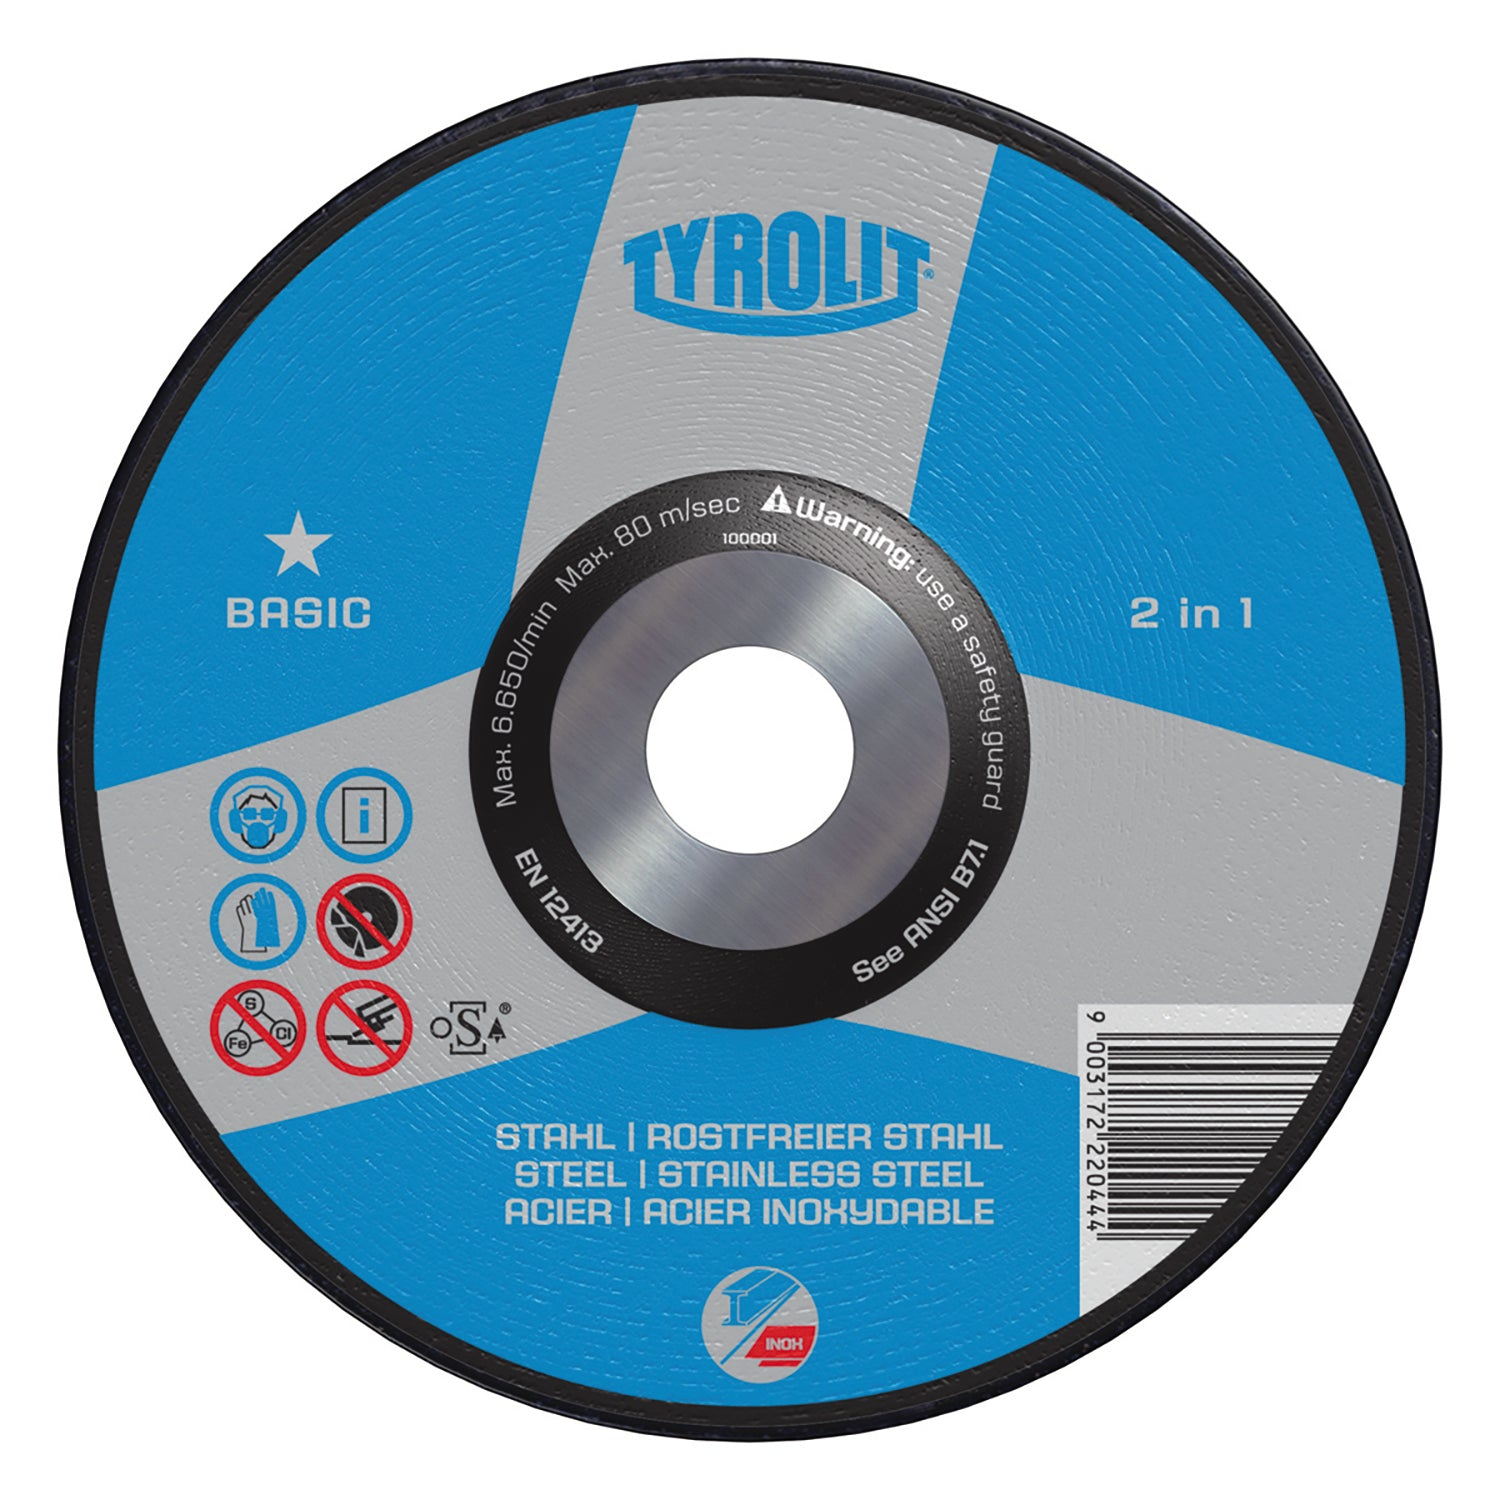 "5PC 4-1/2"" x 1/4"" x 5/8""-11 Tyrolit Abrasives BASIC 2-in-1 Grinding Wheel"